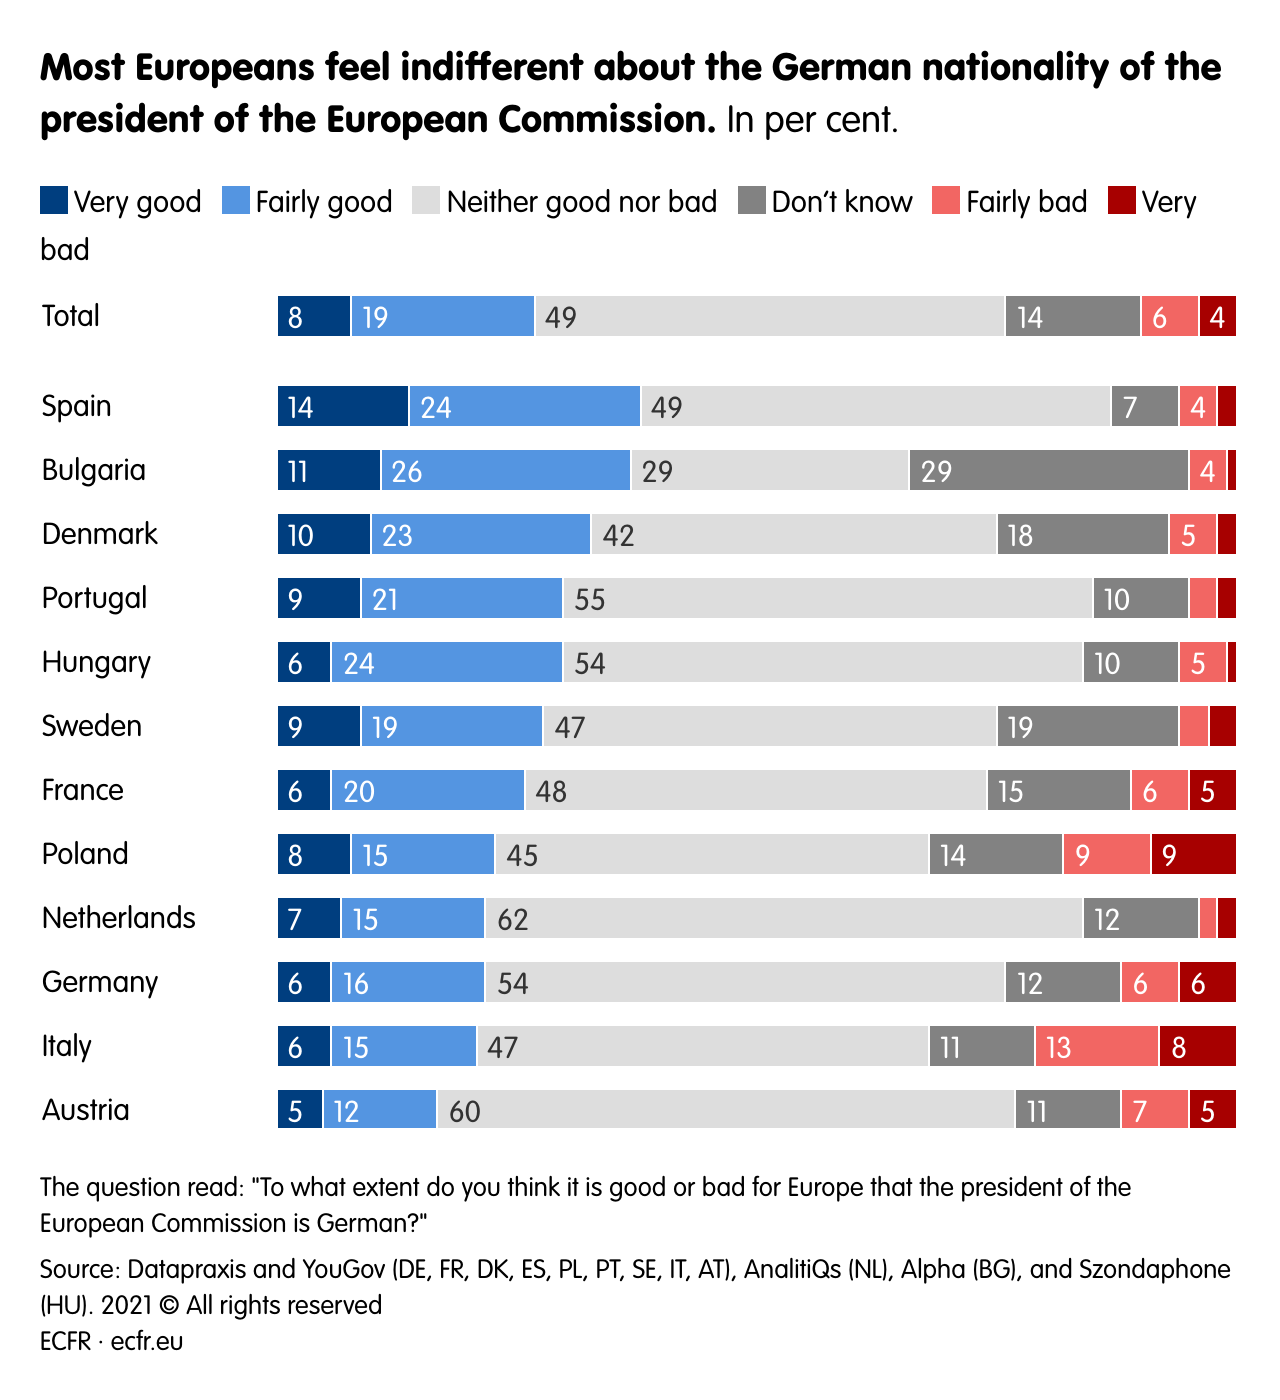 Most Europeans feel indifferent about the German nationality of the president of the European Commission.